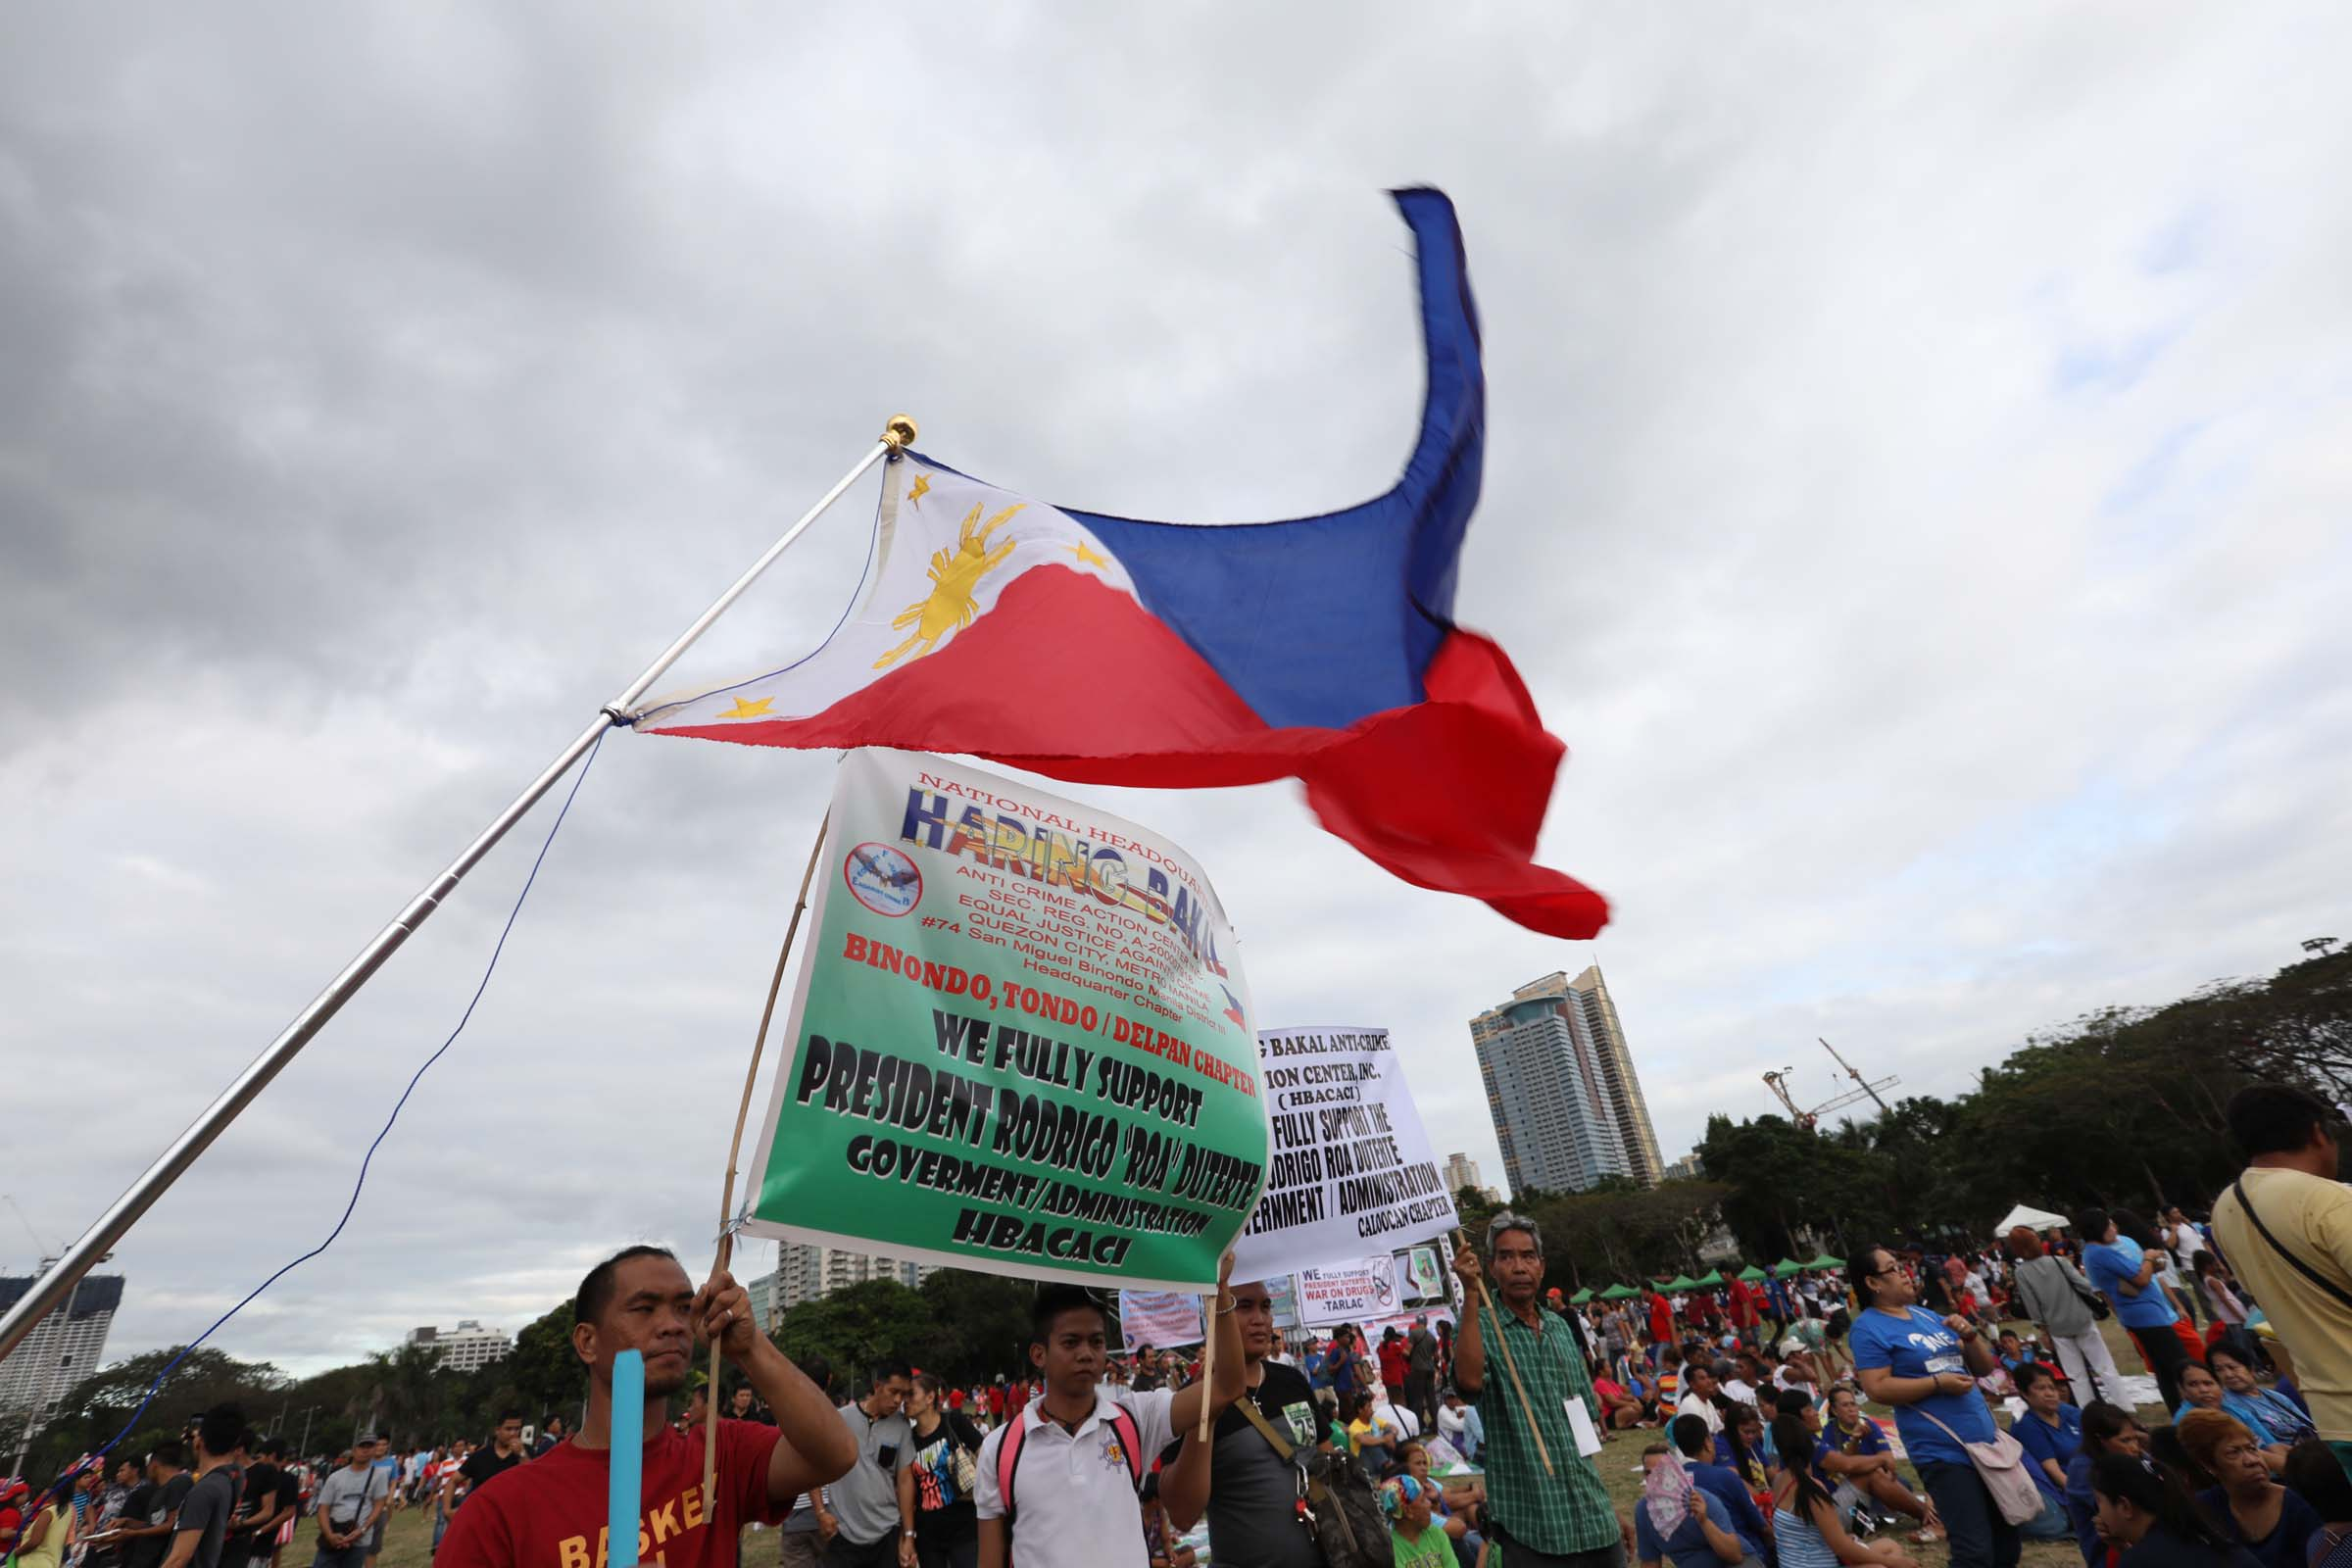 The gathering at Luneta coincided with the commemoration of the 31st anniversary of the EDSA People Power Revolution held at the People Power Monument. (Photo: Avito C. Dalan/ PNA)